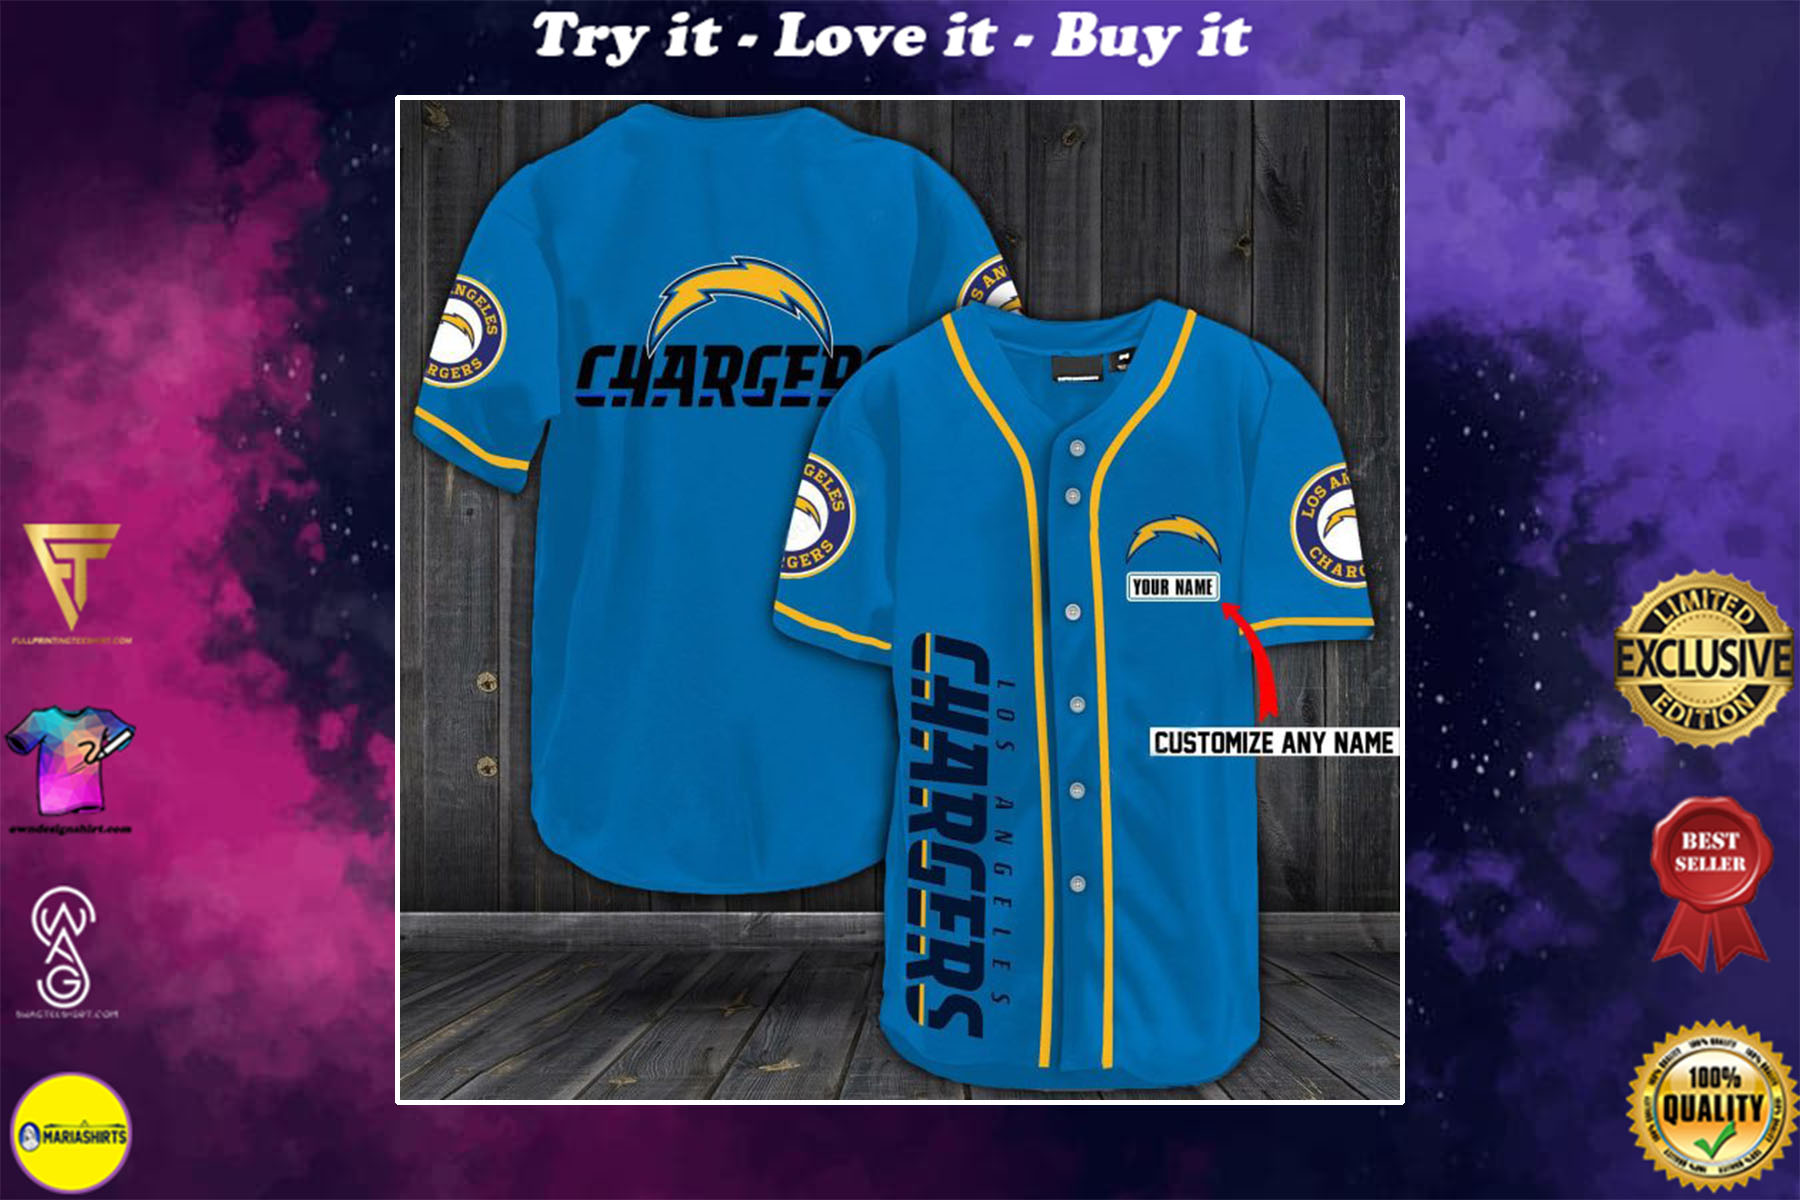 personalized name los angeles chargers baseball shirt - maria